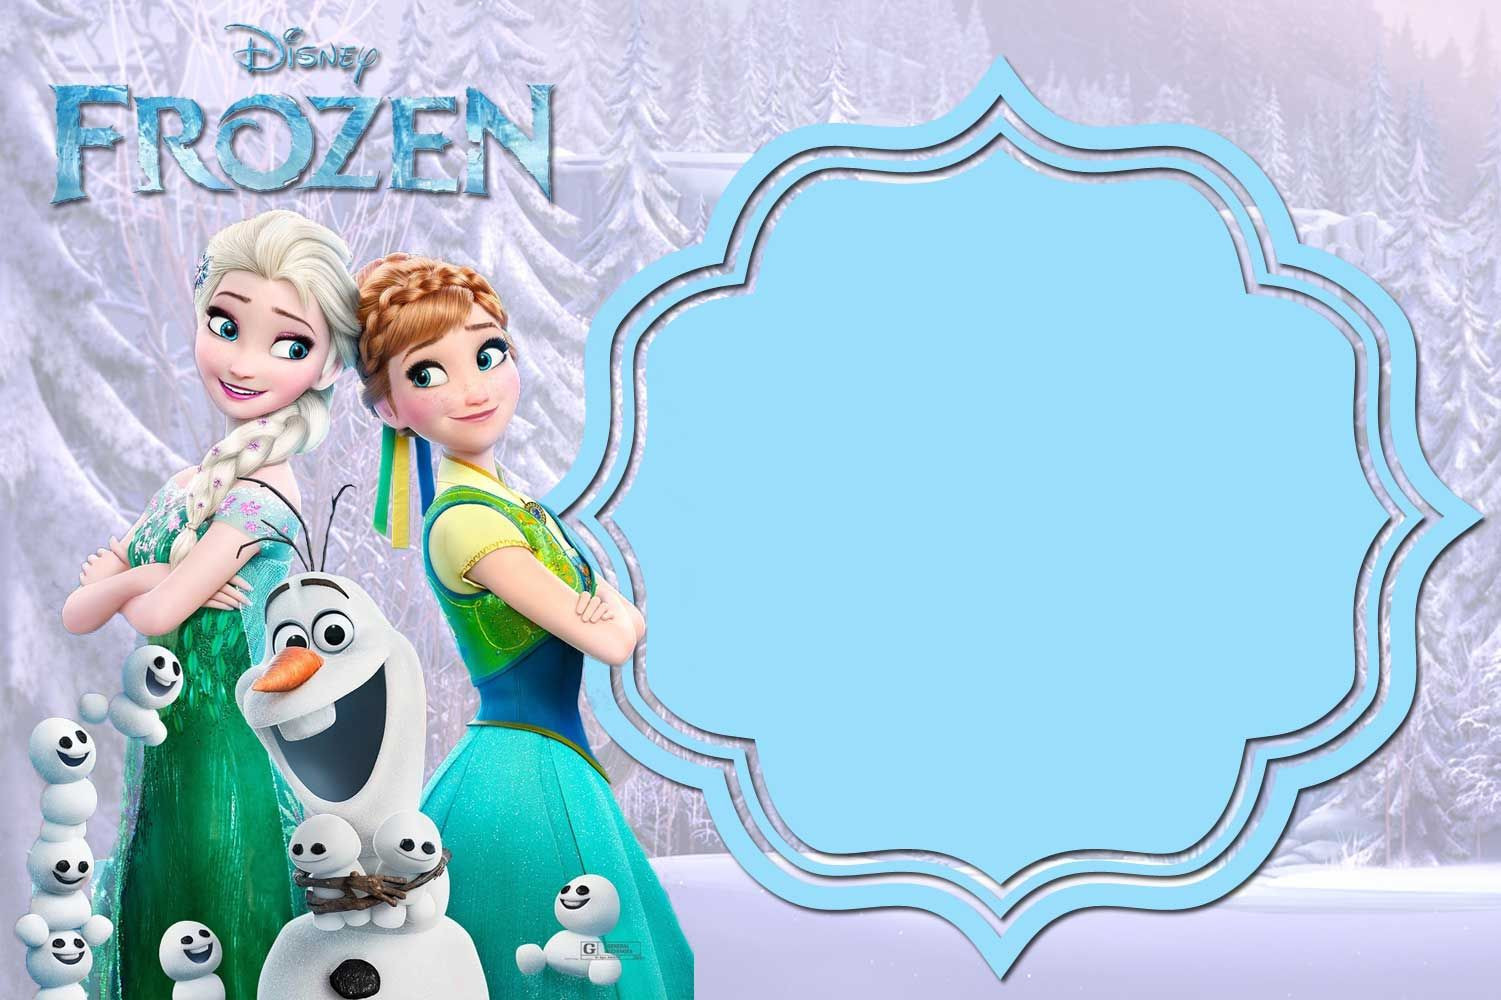 Frozen Printable Invitation Free Printable Frozen Anna and Elsa Invitation Templates